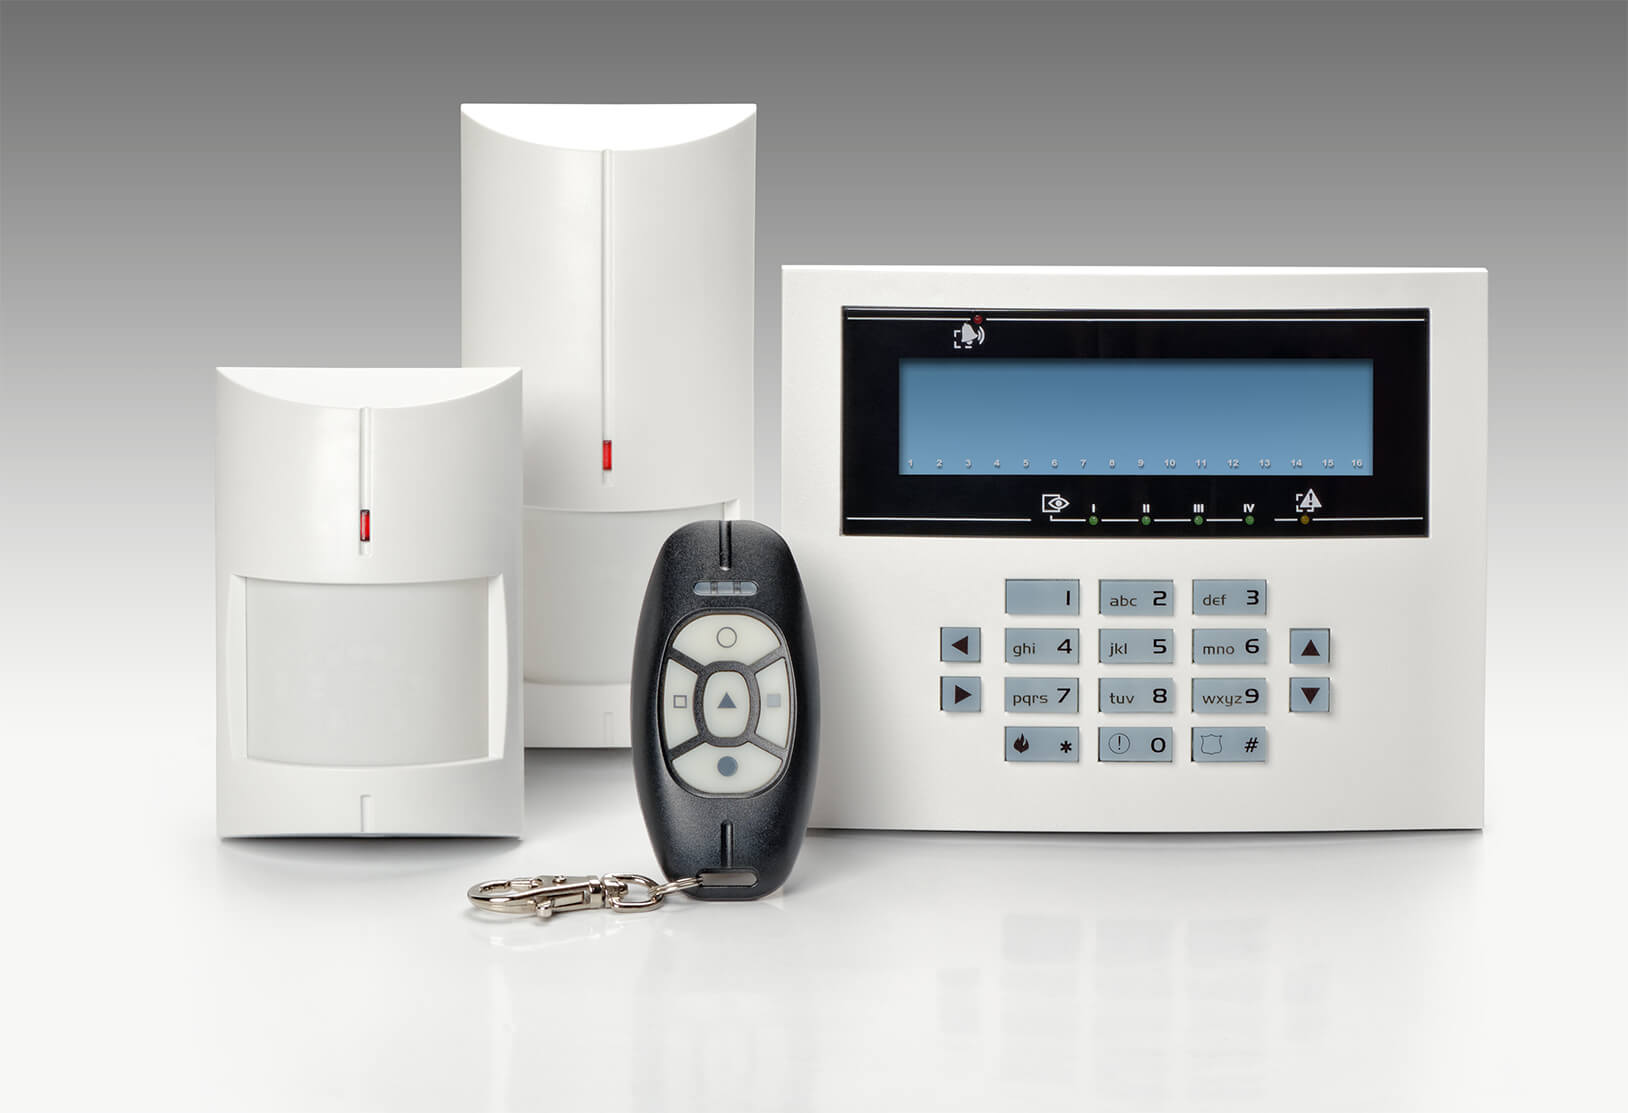 Commercial Burglar Alarms For Business in Kensal Rise NW10  - Local Kensal Rise NW10 burglar alarm company.Call 02078872244 - Dedicated to Safety & Security. Companies, shops and homes ..